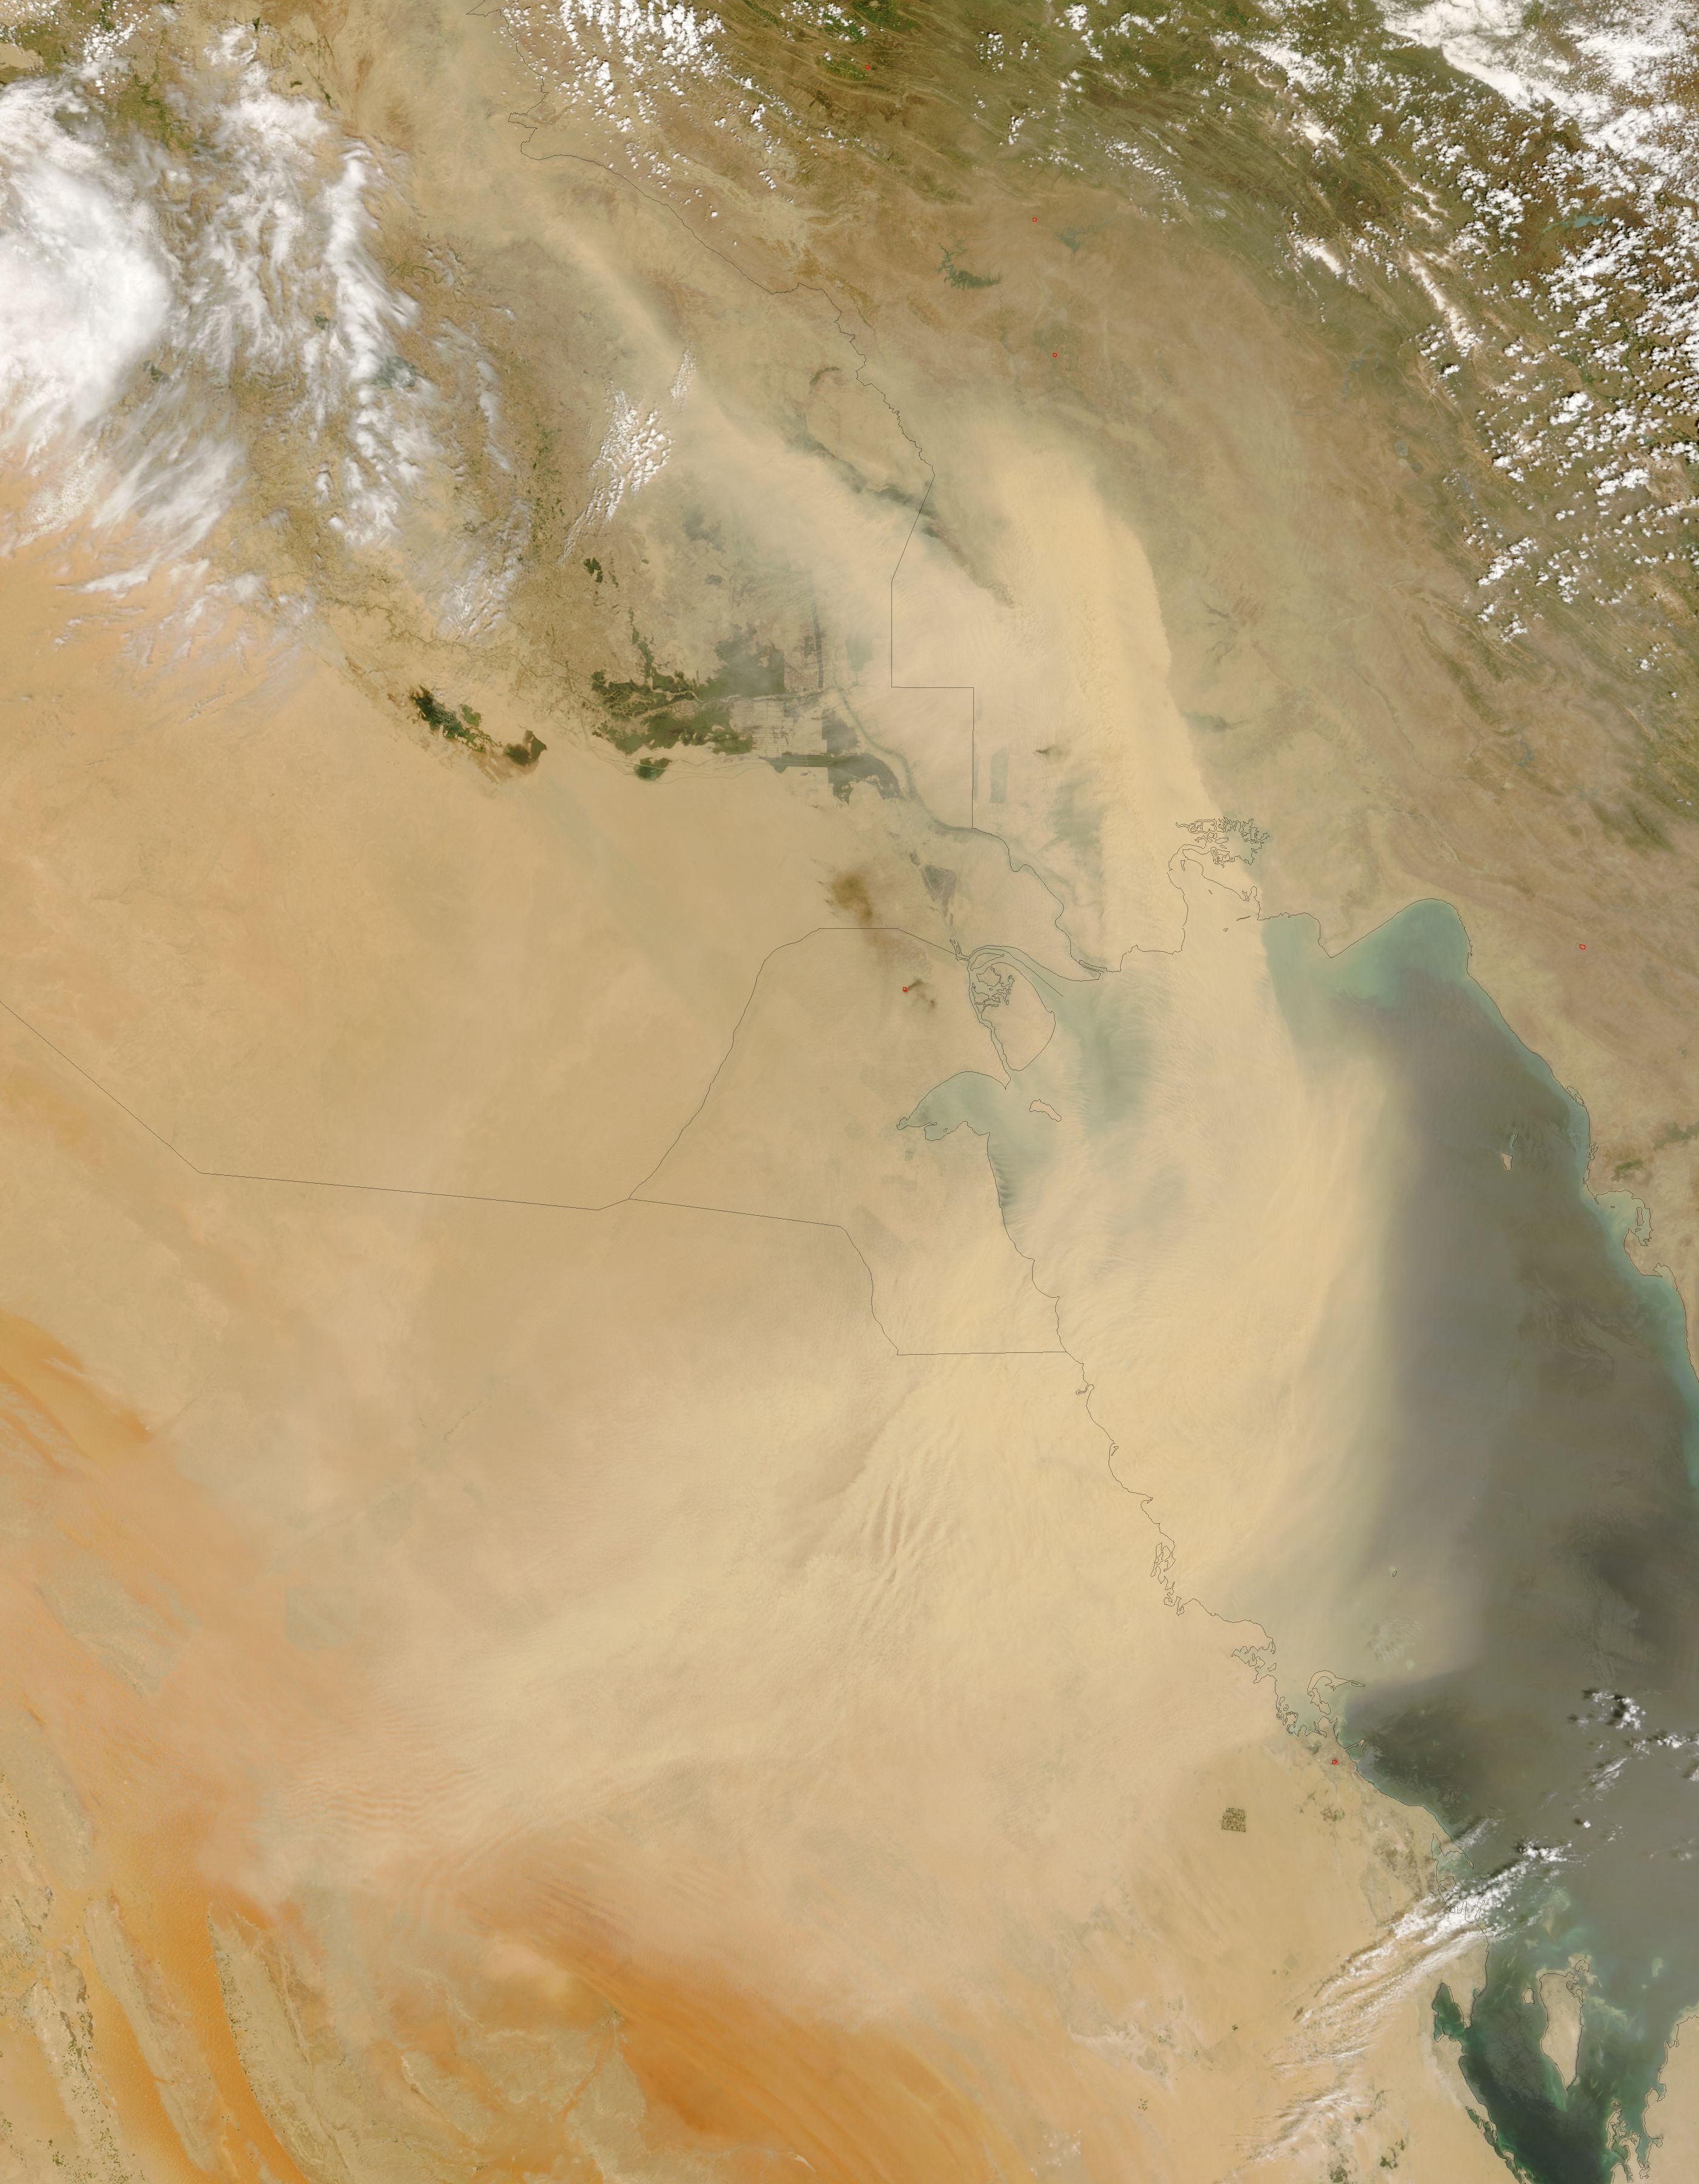 NASA Visible Earth: Dust Storm over the Persian Gulf